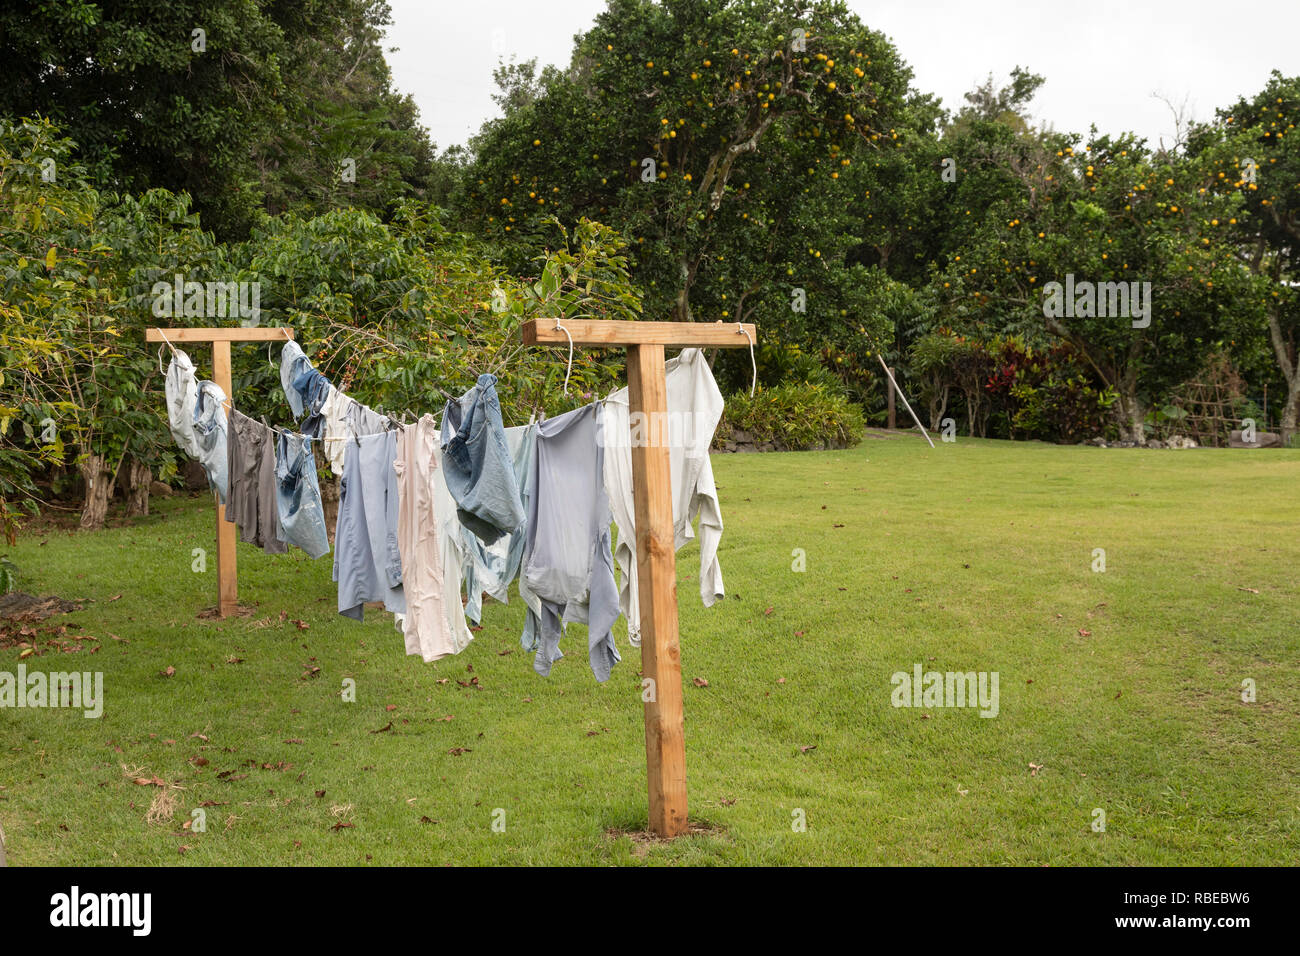 Captain Cook, Hawaii - Laundry hanging on the clothesline at the Kona Coffee Living History Farm. Japanese immigrant Daisaku Uchida and his family ope - Stock Image